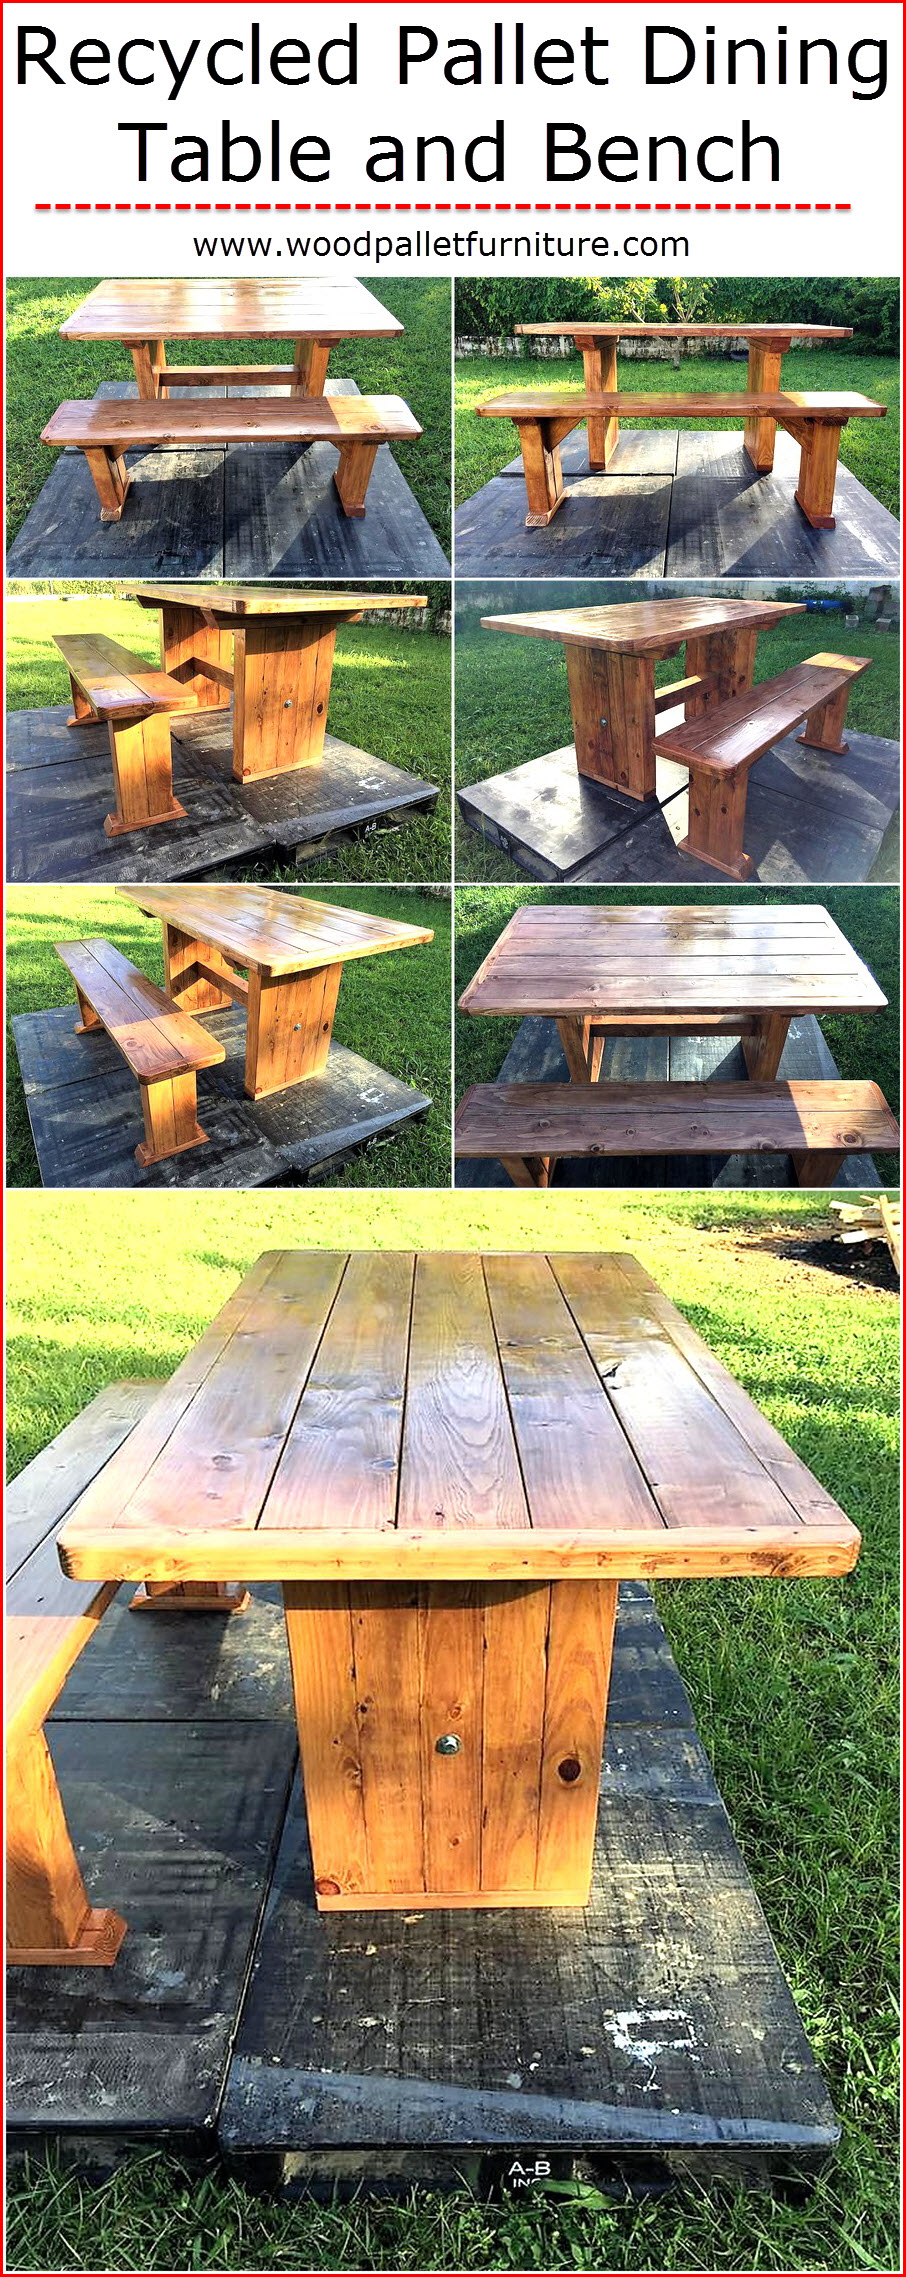 recycled-pallet-dining-table-and-bench